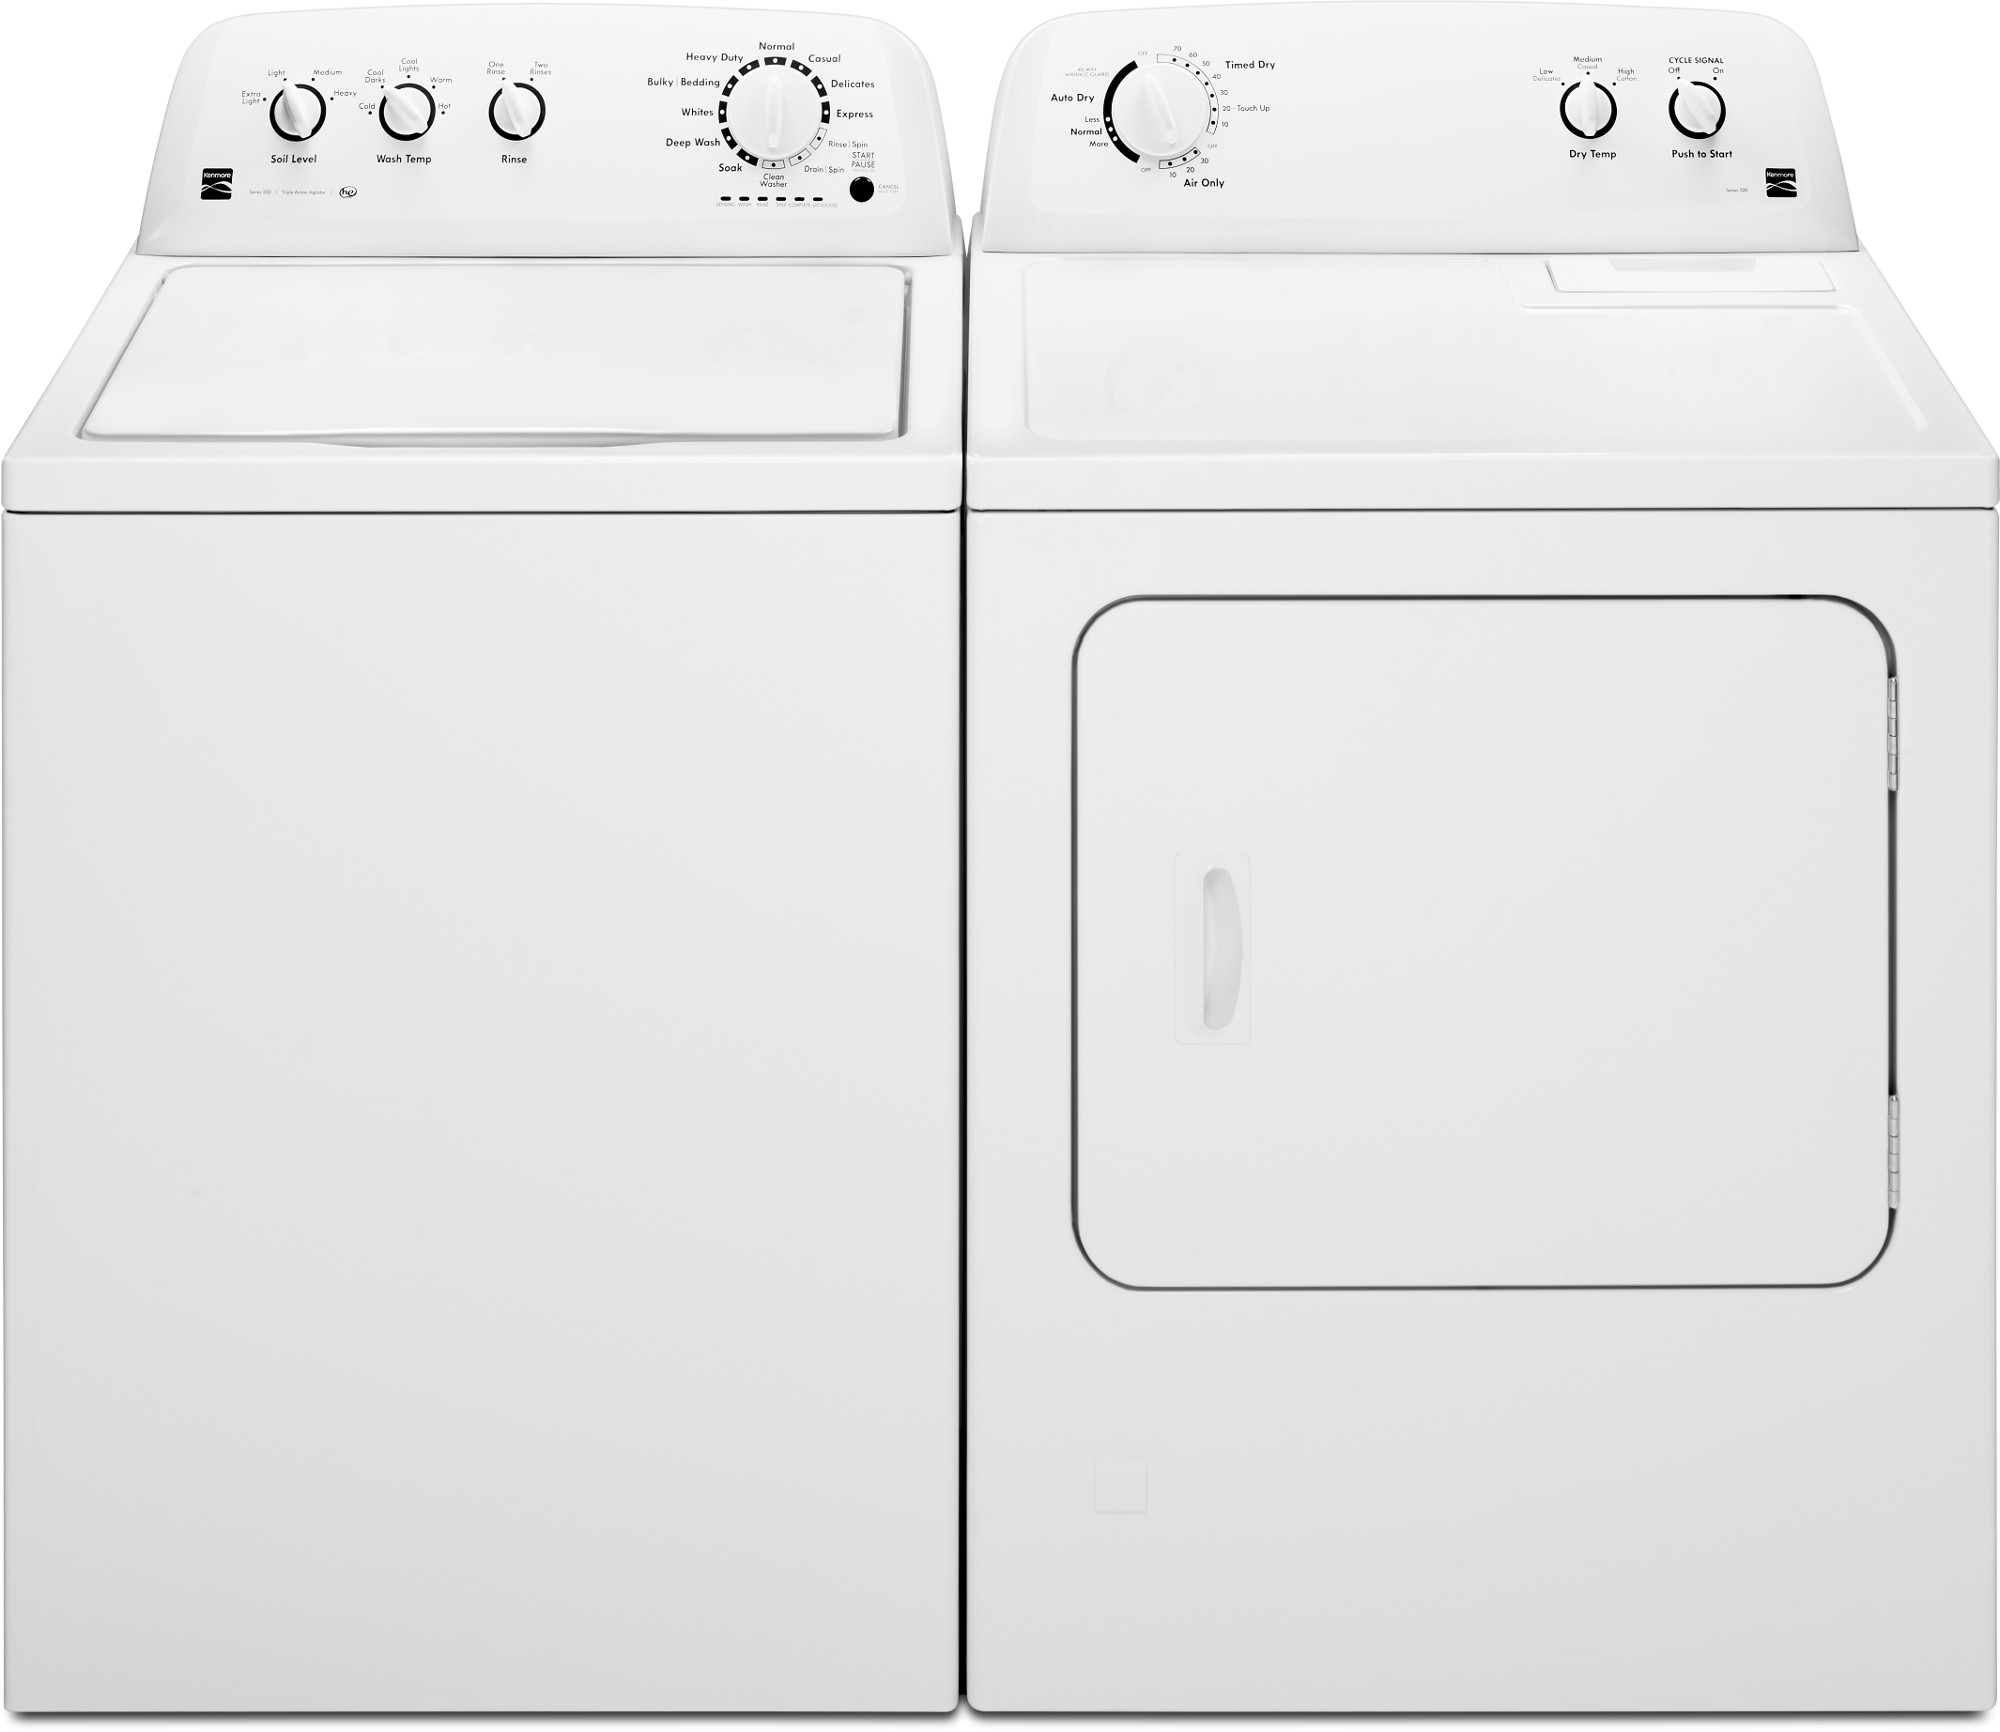 Kenmore 3.5 cu. ft. Agitator Top-Load Washer & Gas or Electric 7.0 cu. ft.Dryer - White